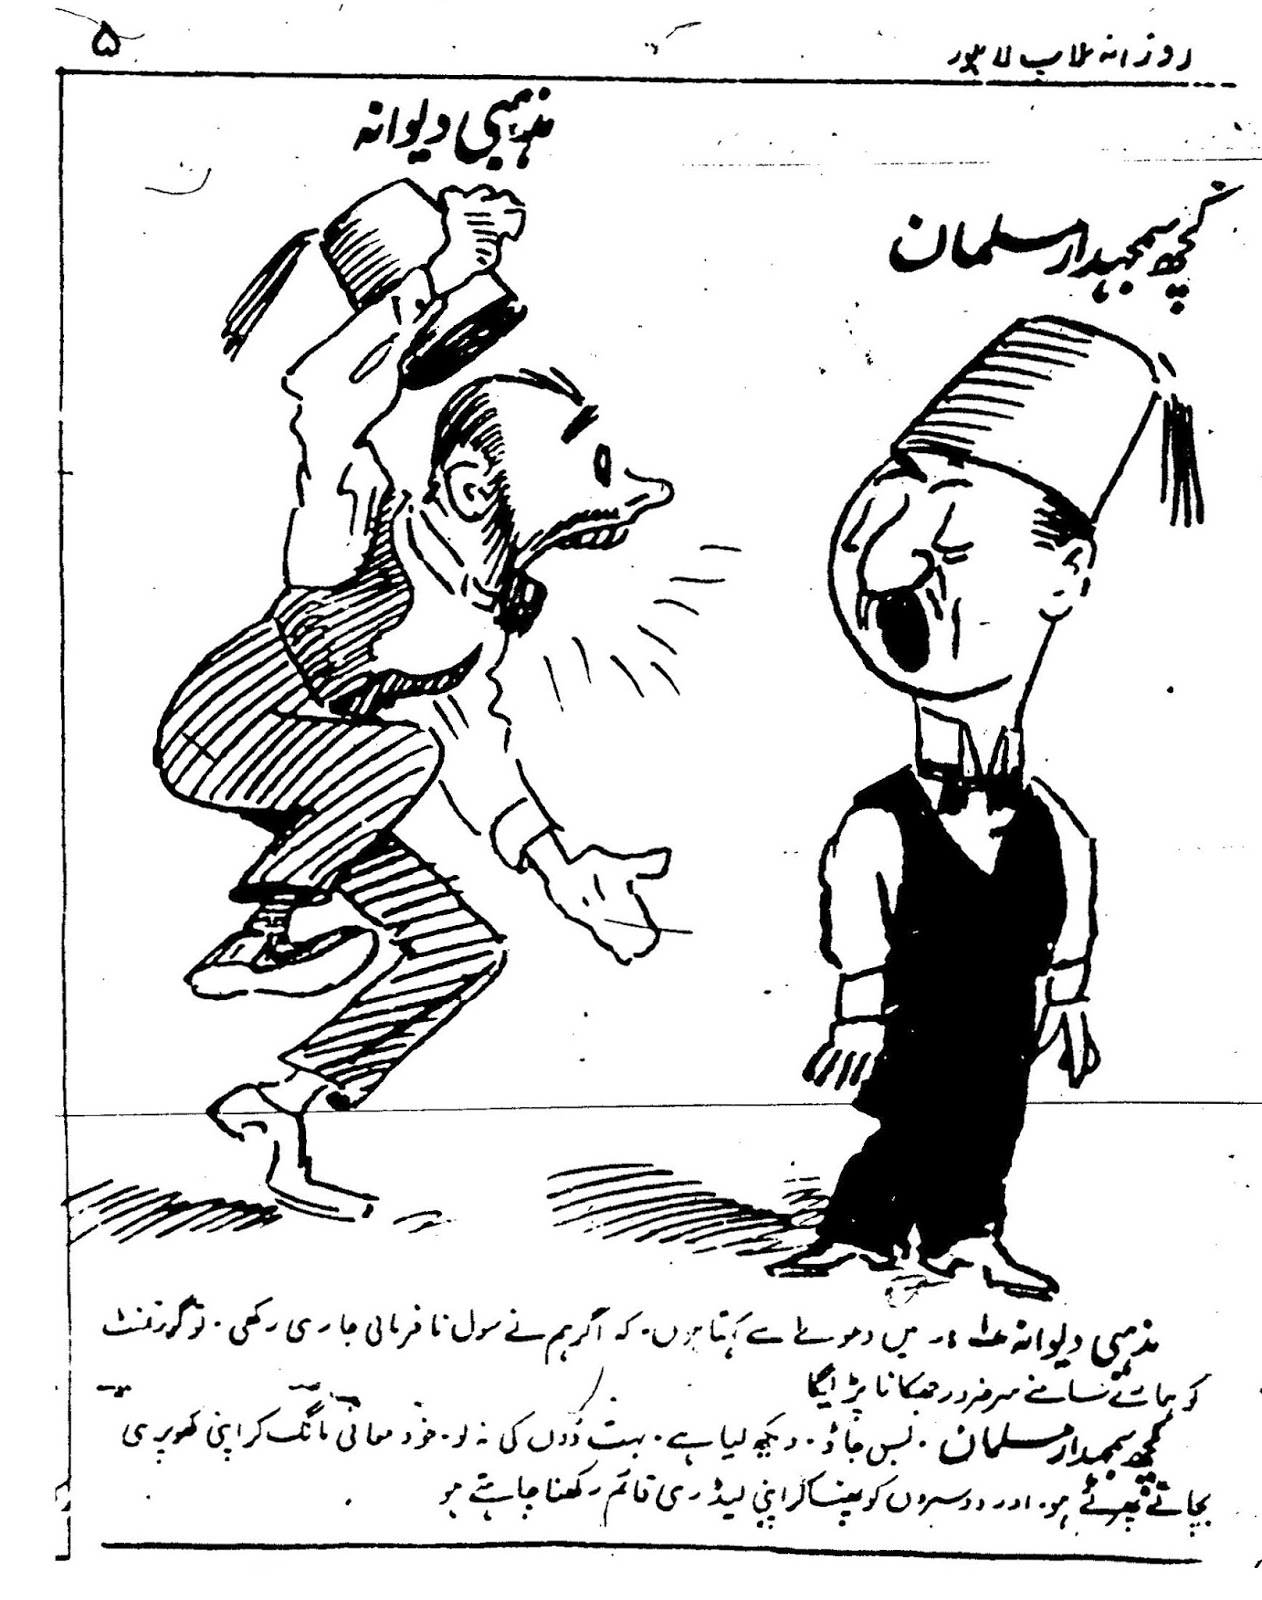 """Above a cartoon published in the Lahore newspaper Milap in 1927 drew a sharp visual contrast between the kuch samajhdar musalman (the somewhat-reasonable Muslim), outfitted in a waistcoat and bowtie, and the mazhabi diwana (religious crazy or fanatic), bearded and jumping up and down in a fit of passion. While the caricature in Milap might seem less offensive than calling all Indian Muslims fanatics, it worked as a veiled threat. The inclusion of Muslims in nationalist politics depended on their renouncing so-called """"communal"""" demands for legal protection from the types of religious injury discussed in this episode."""